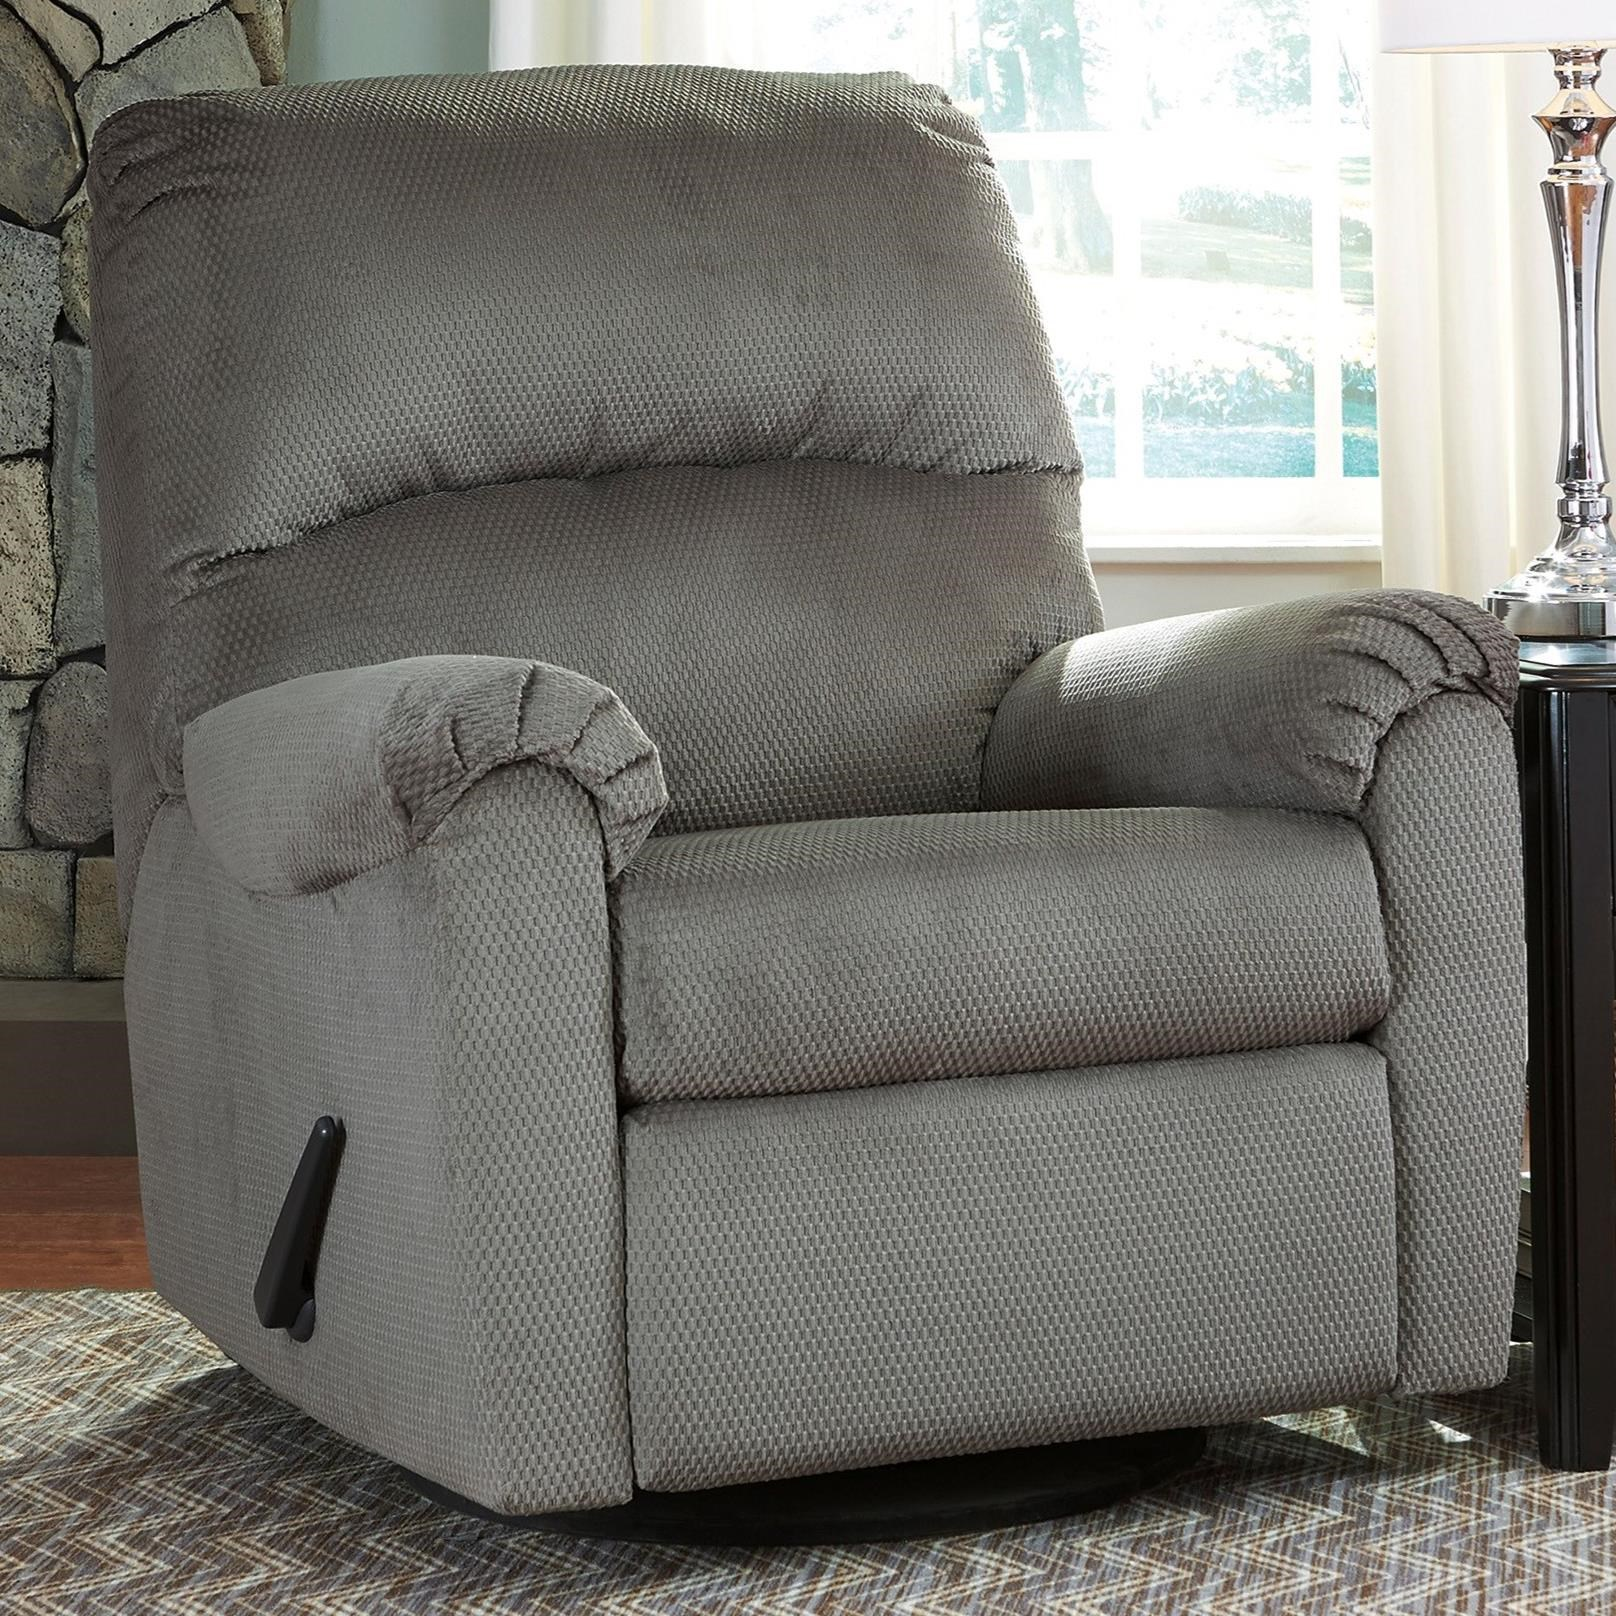 Bronson Swivel Glider Recliner at Rotmans